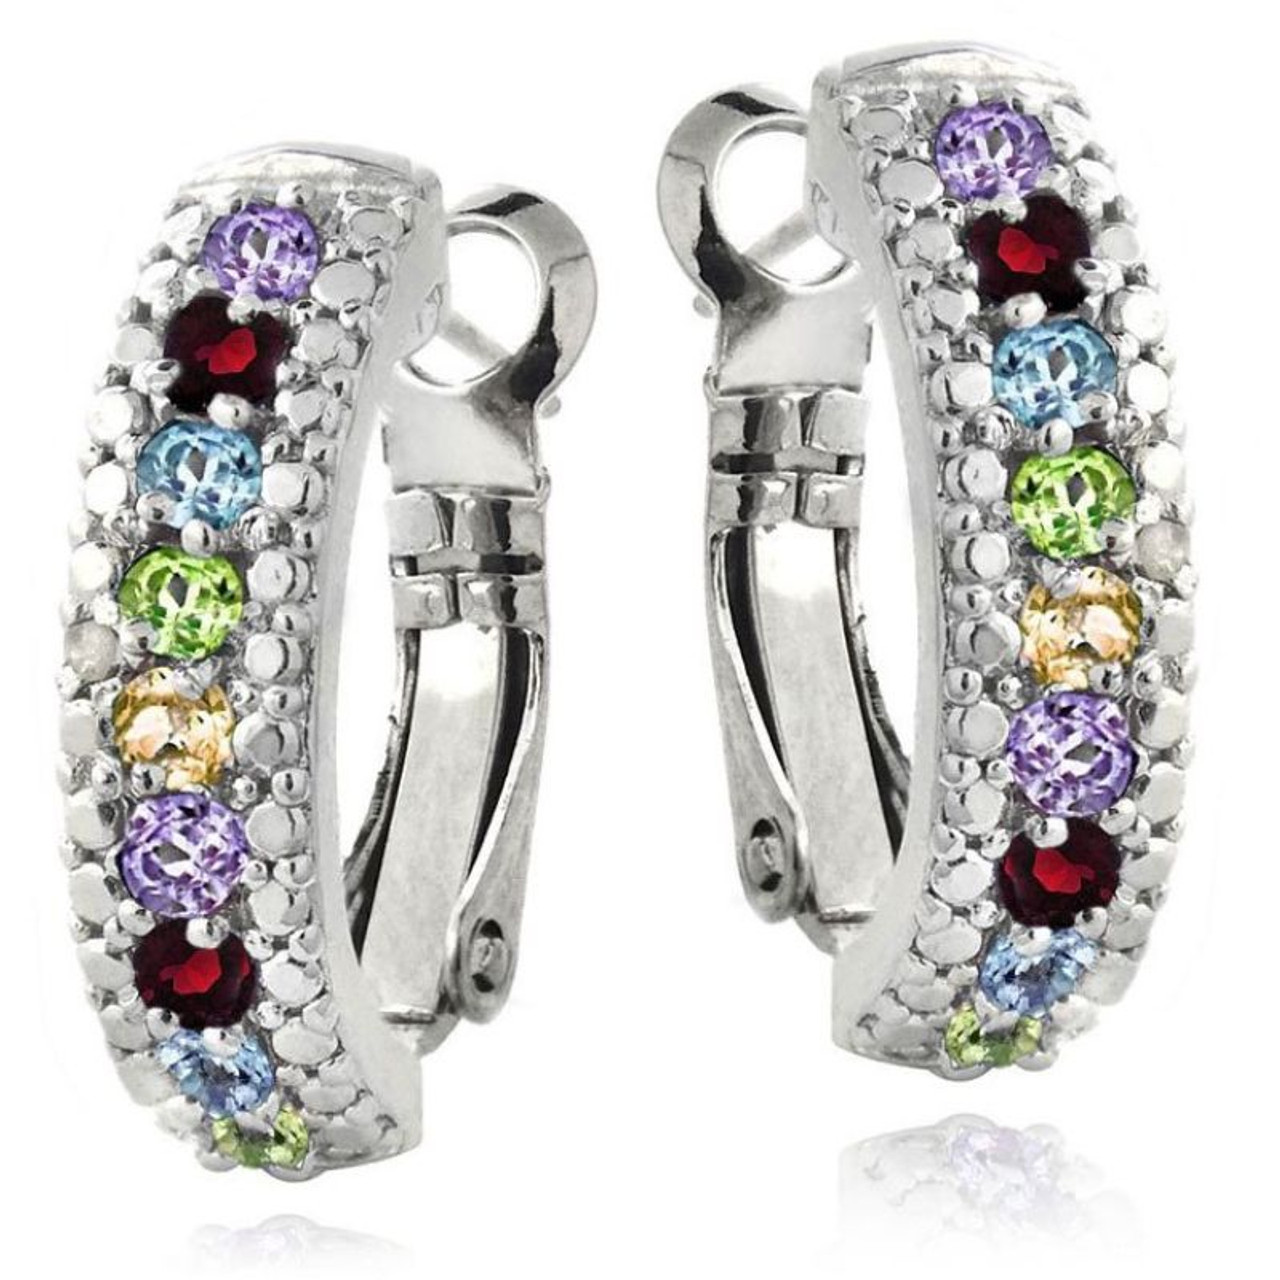 5.00 CTTW Ruby Lining Plated in 18K White Gold Earrings